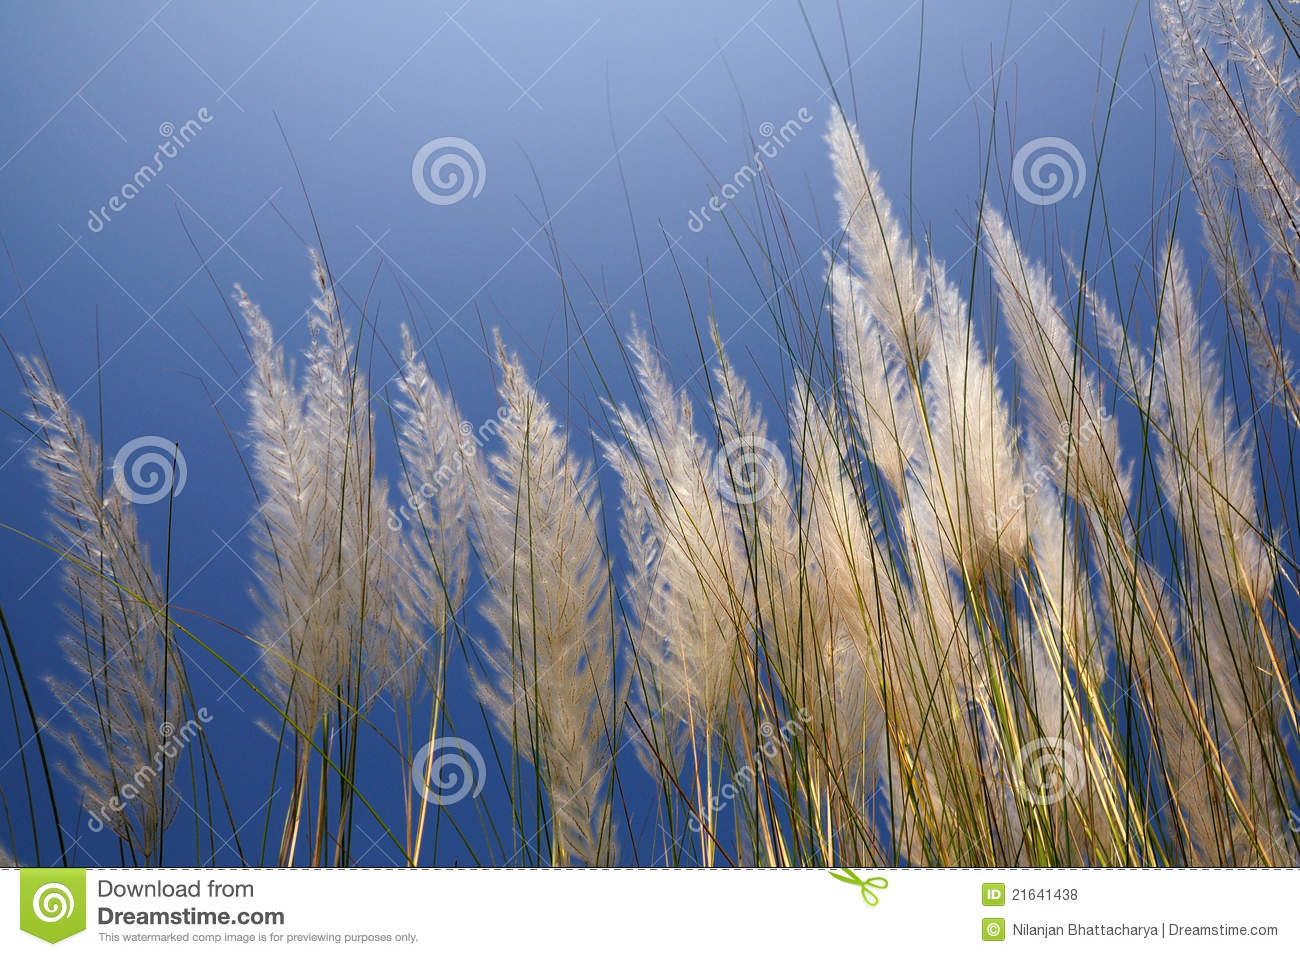 Saccharum Spontaneum Or Kans Grass Stock Photo.